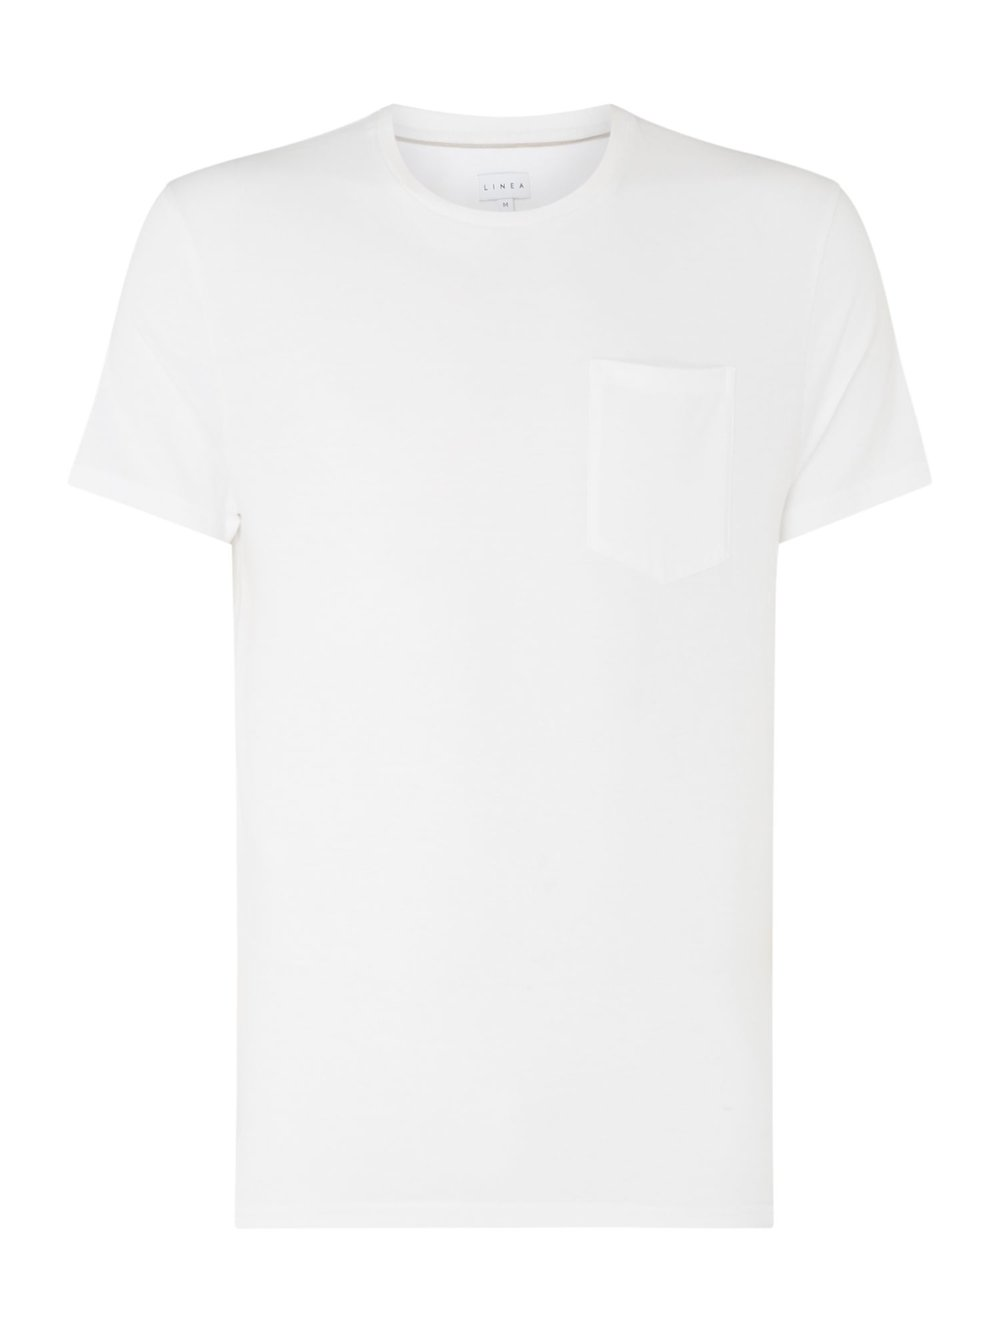 House of Fraser White T-Shirt